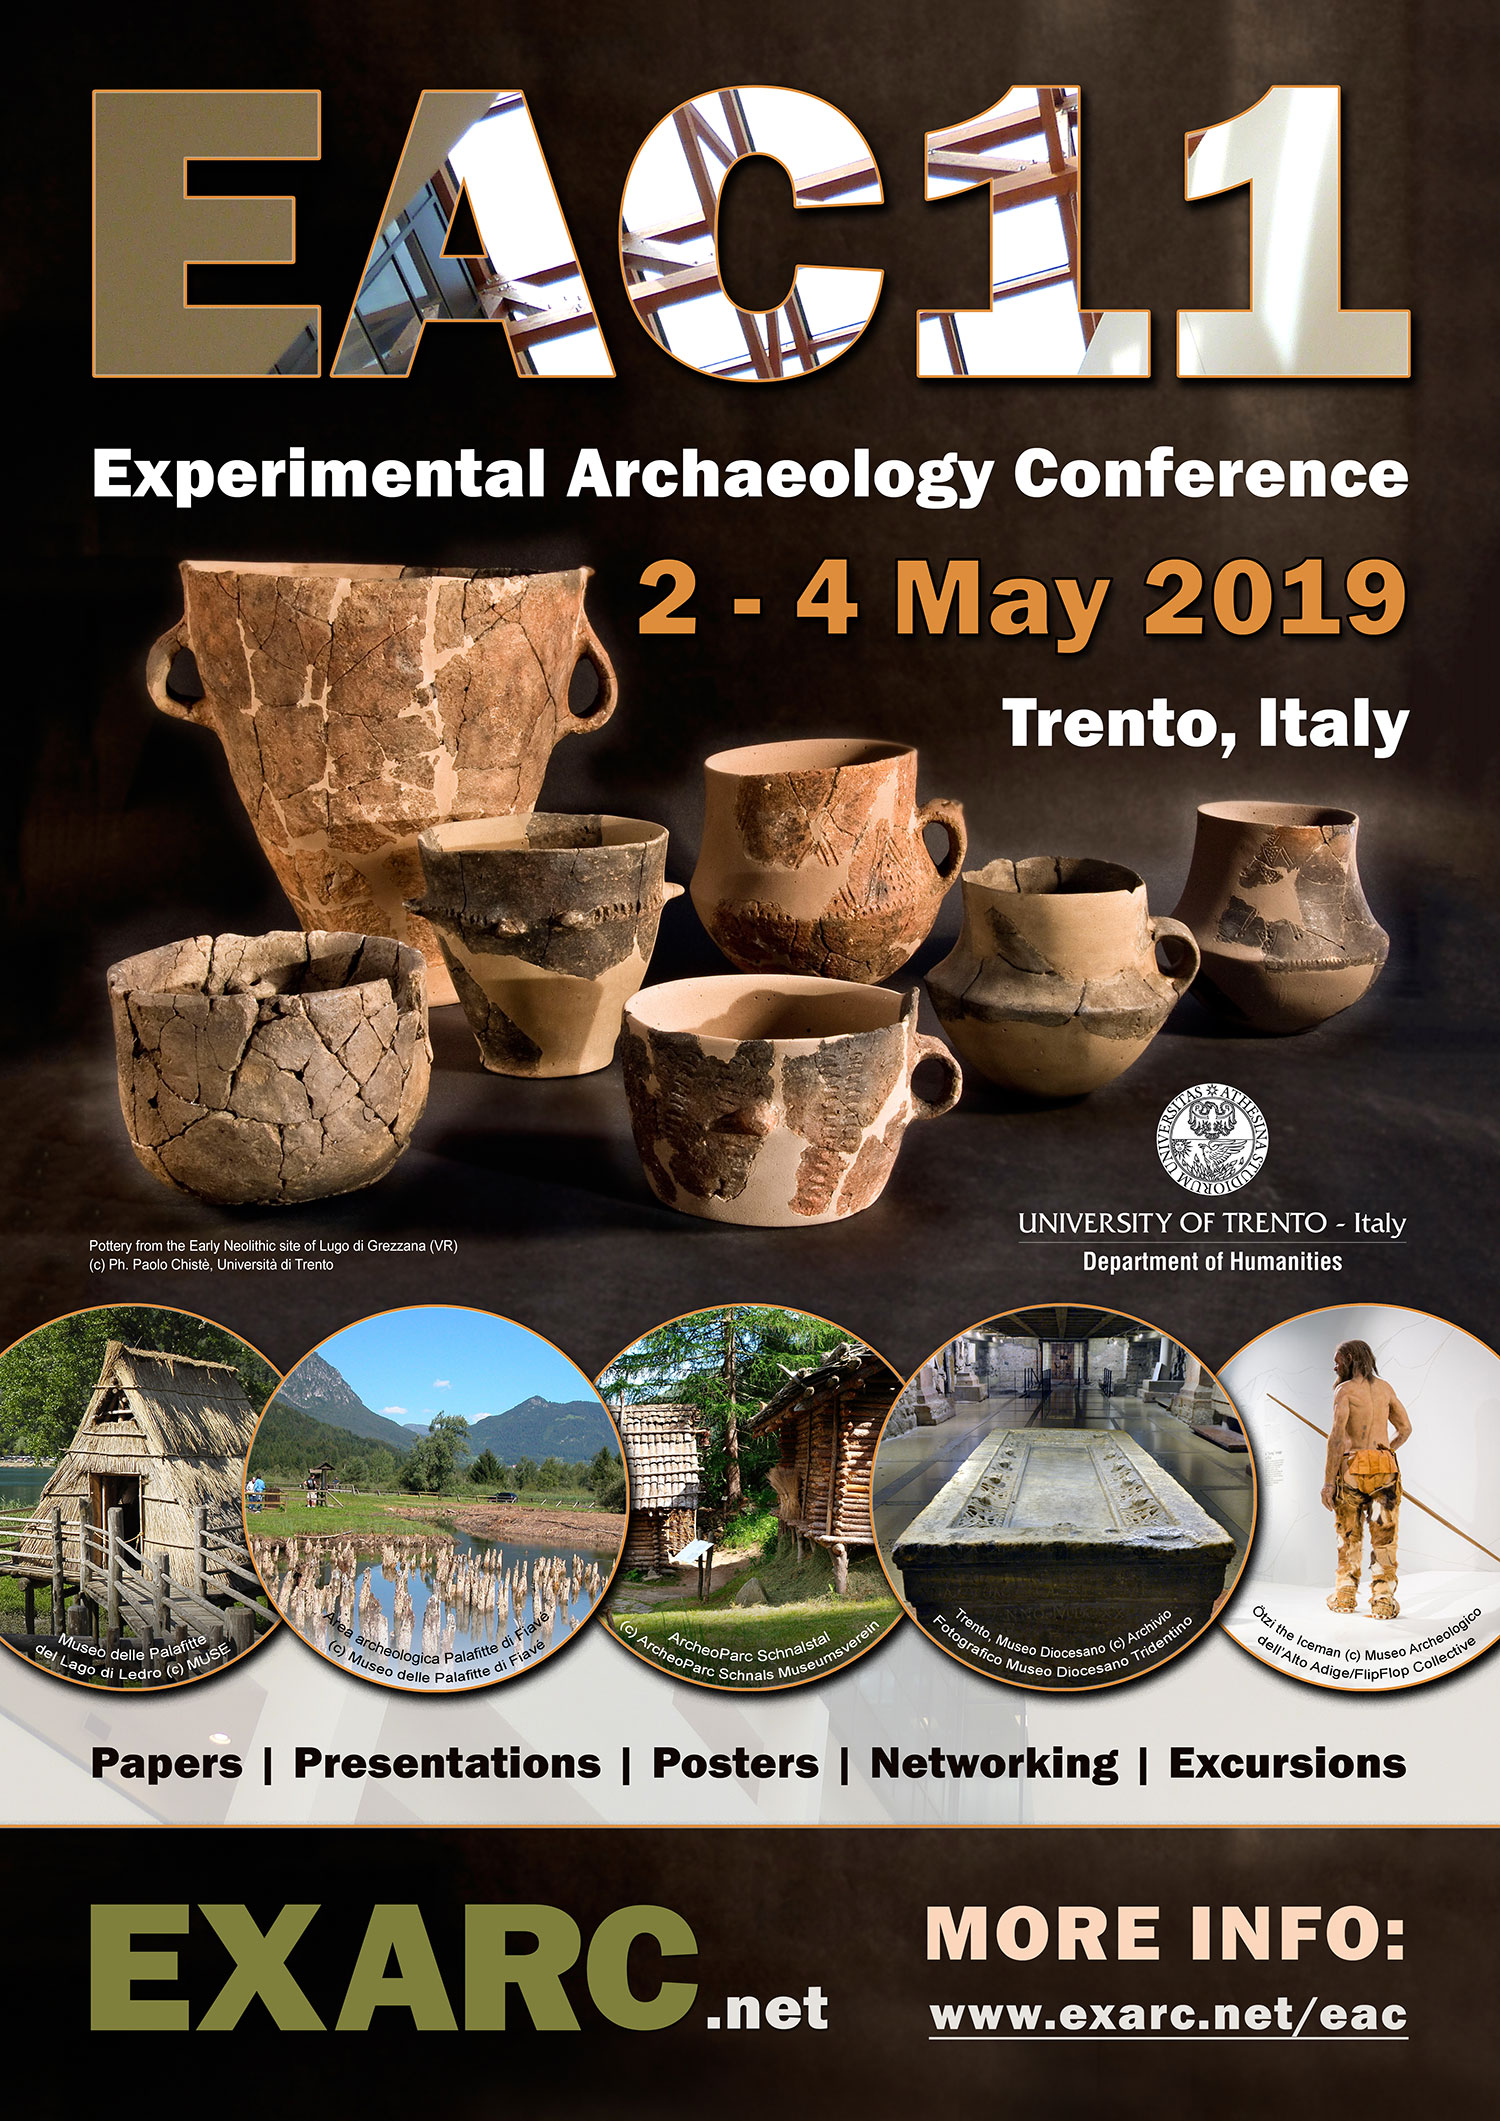 EAC11 Conference Poster Experimental Archaeology Conference EXARC Trento 2019